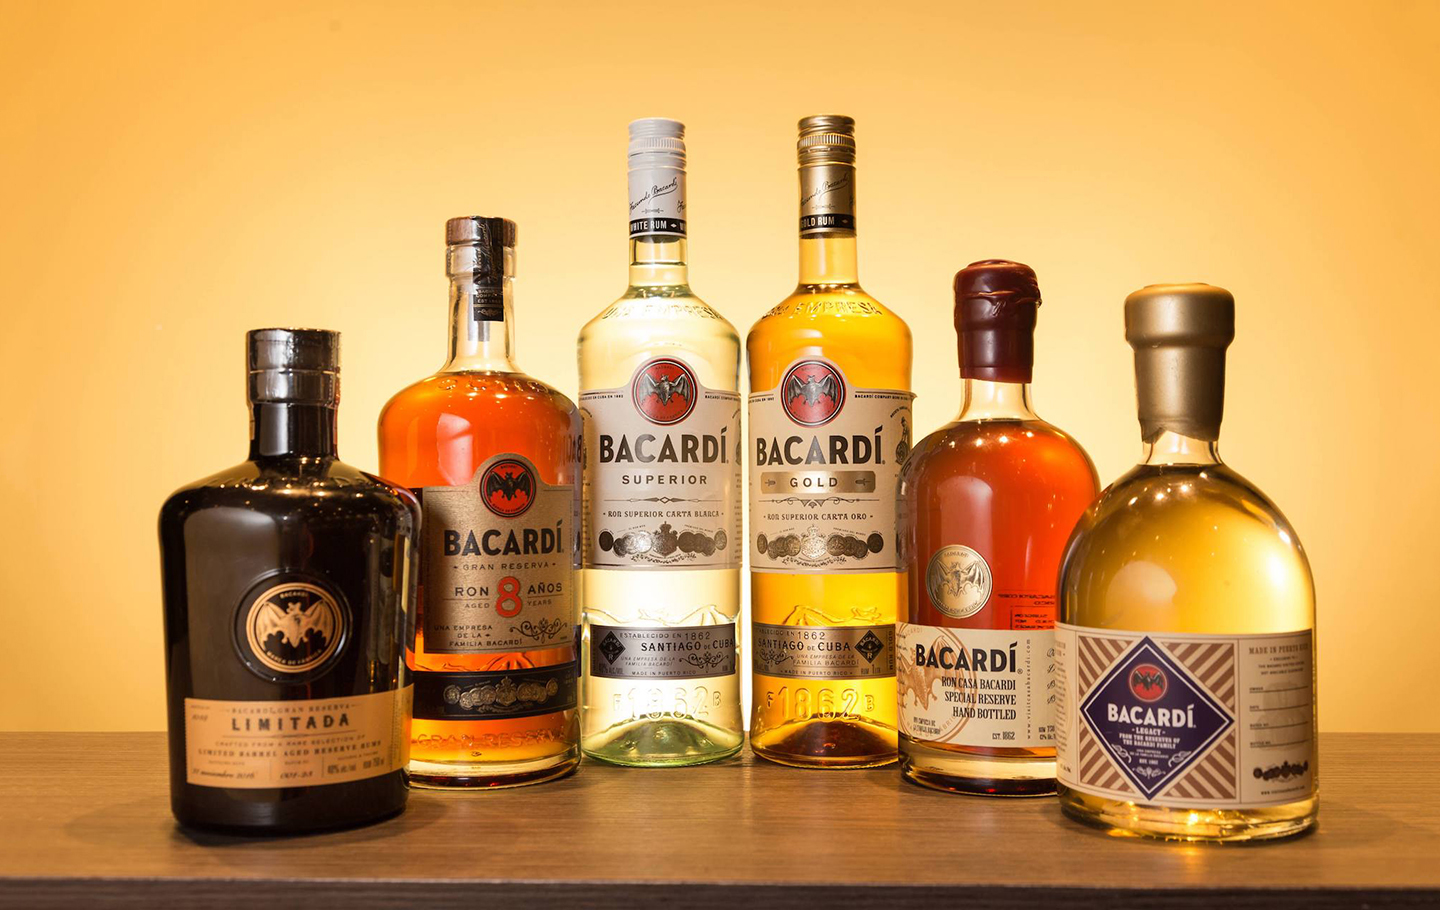 Casa Bacardi is the largest premium rum production facility in the world.